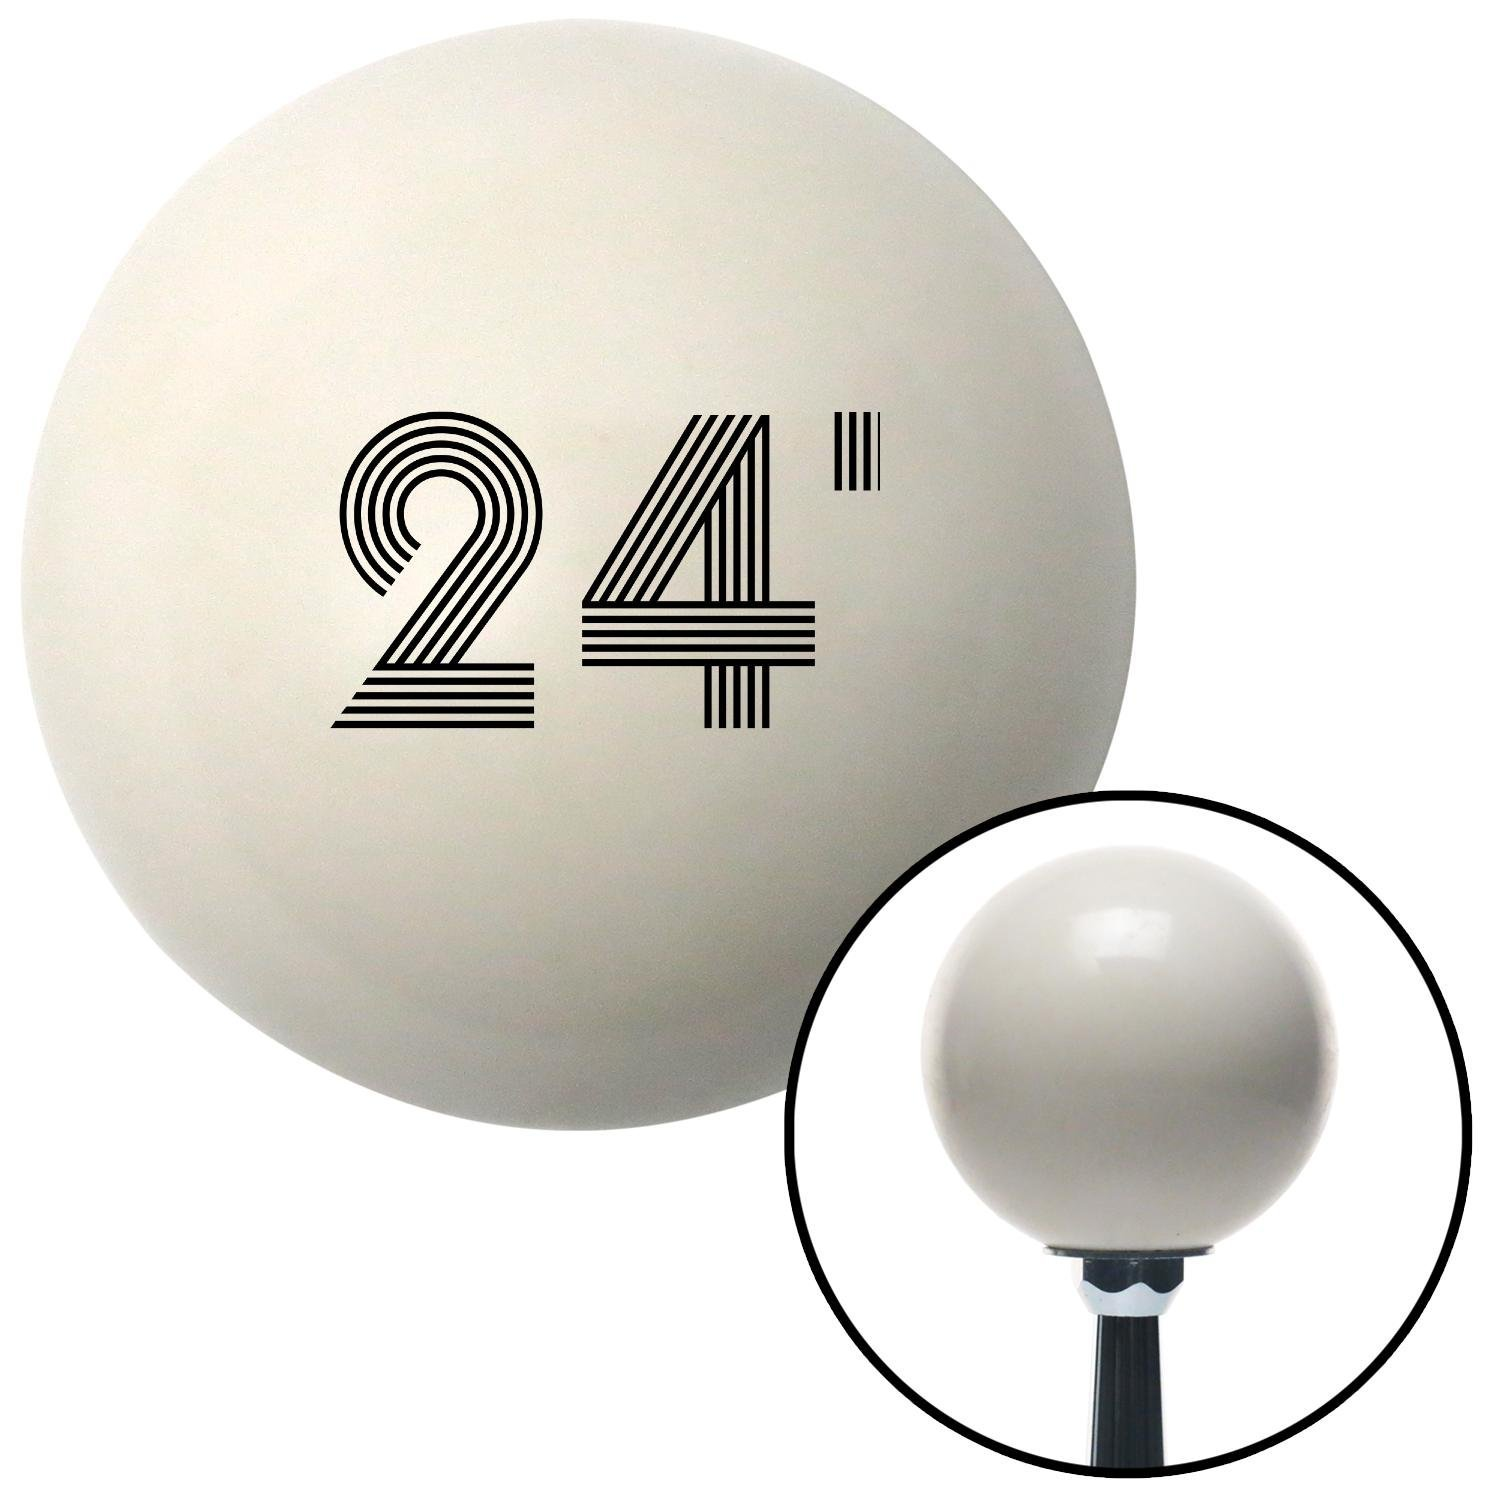 Black 24 Year Retro Series American Shifter 142208 Ivory Shift Knob with M16 x 1.5 Insert